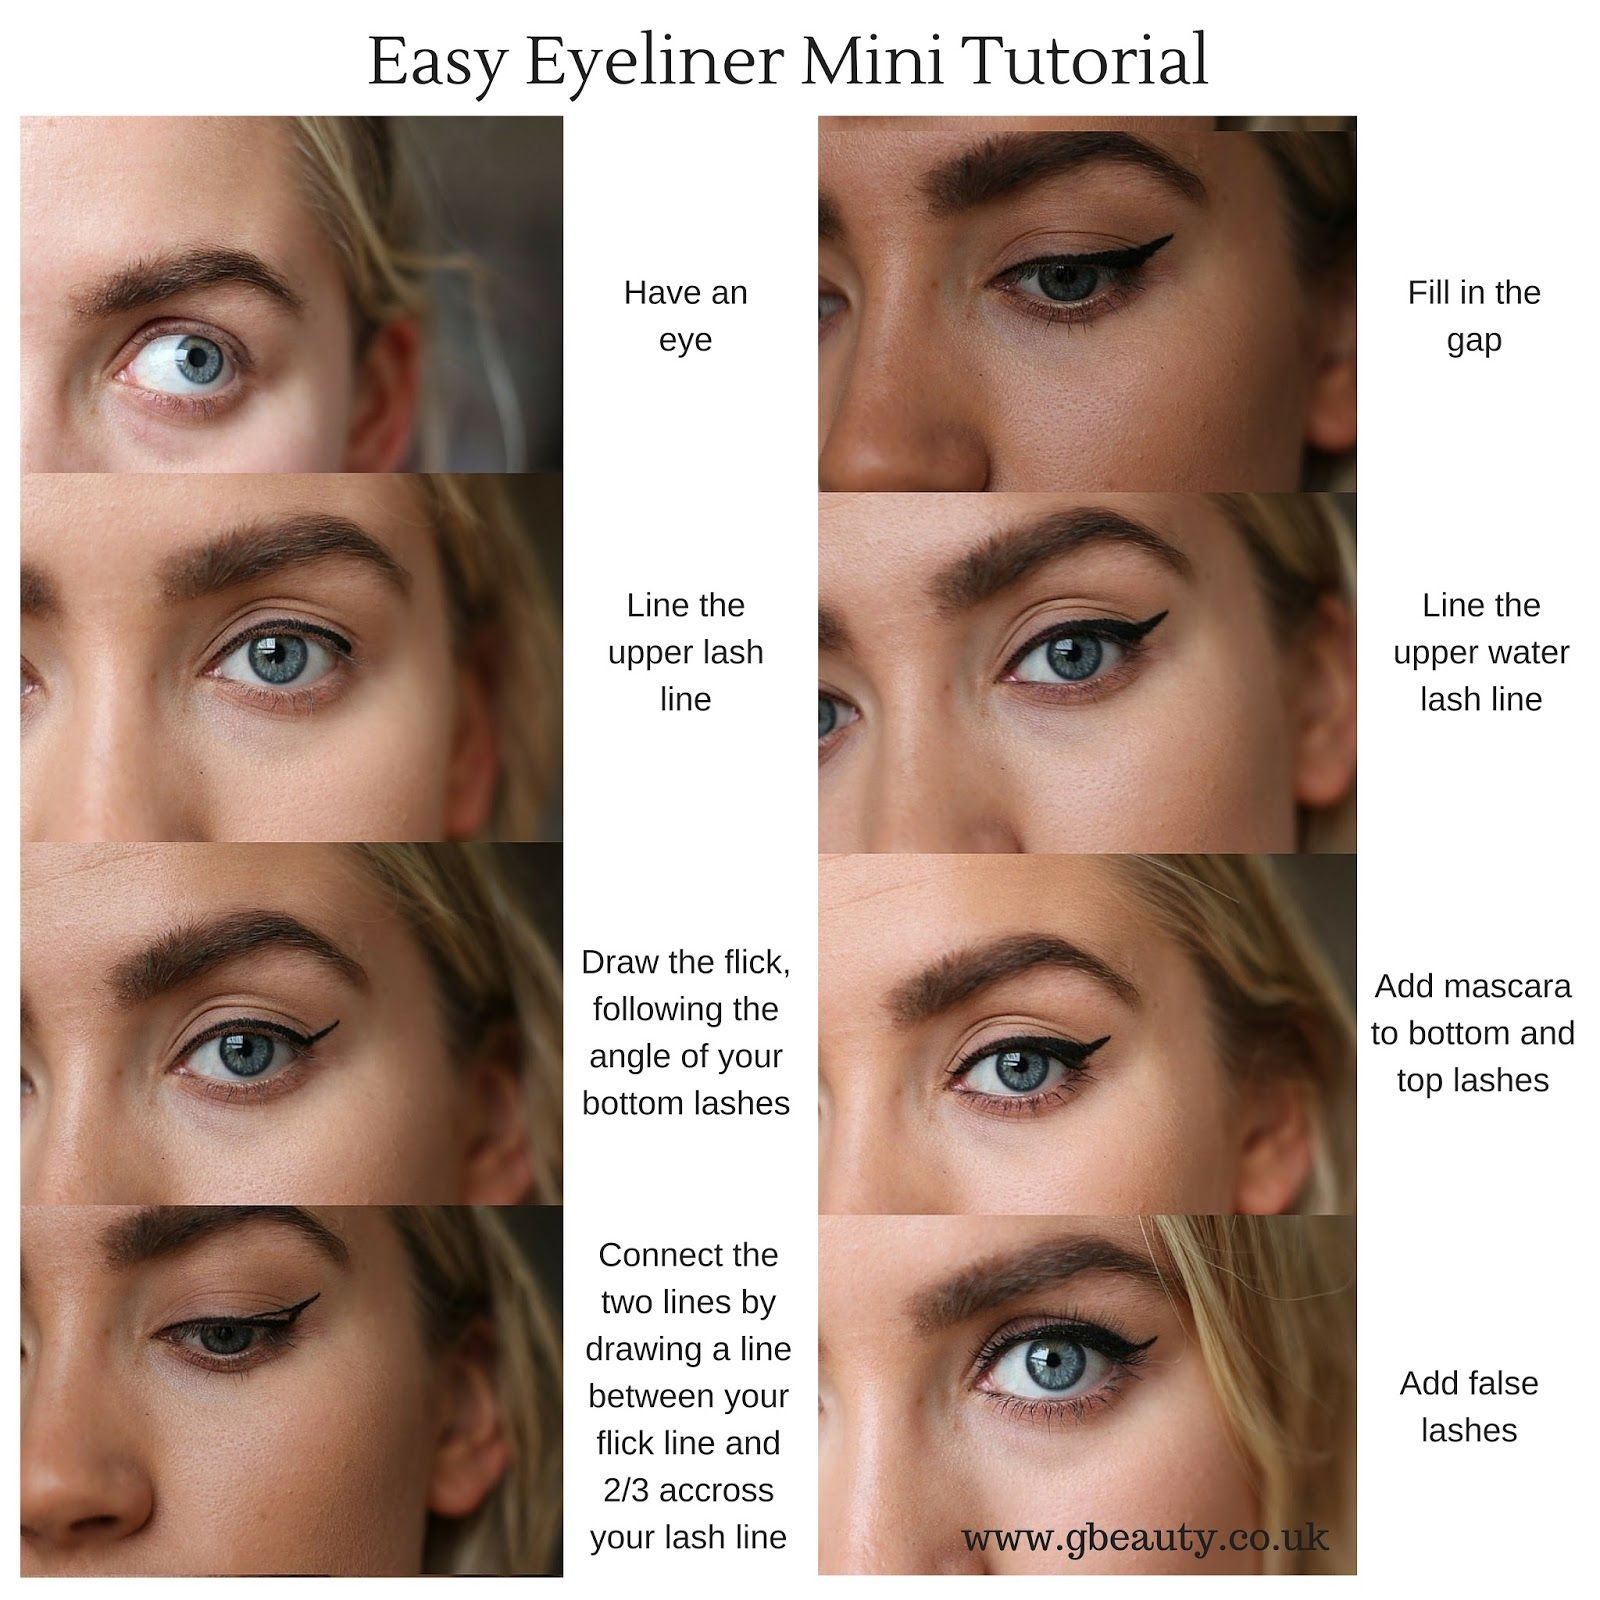 Eyeliner Makeup For No Lashes G Beauty Makeup Without Eyeliner